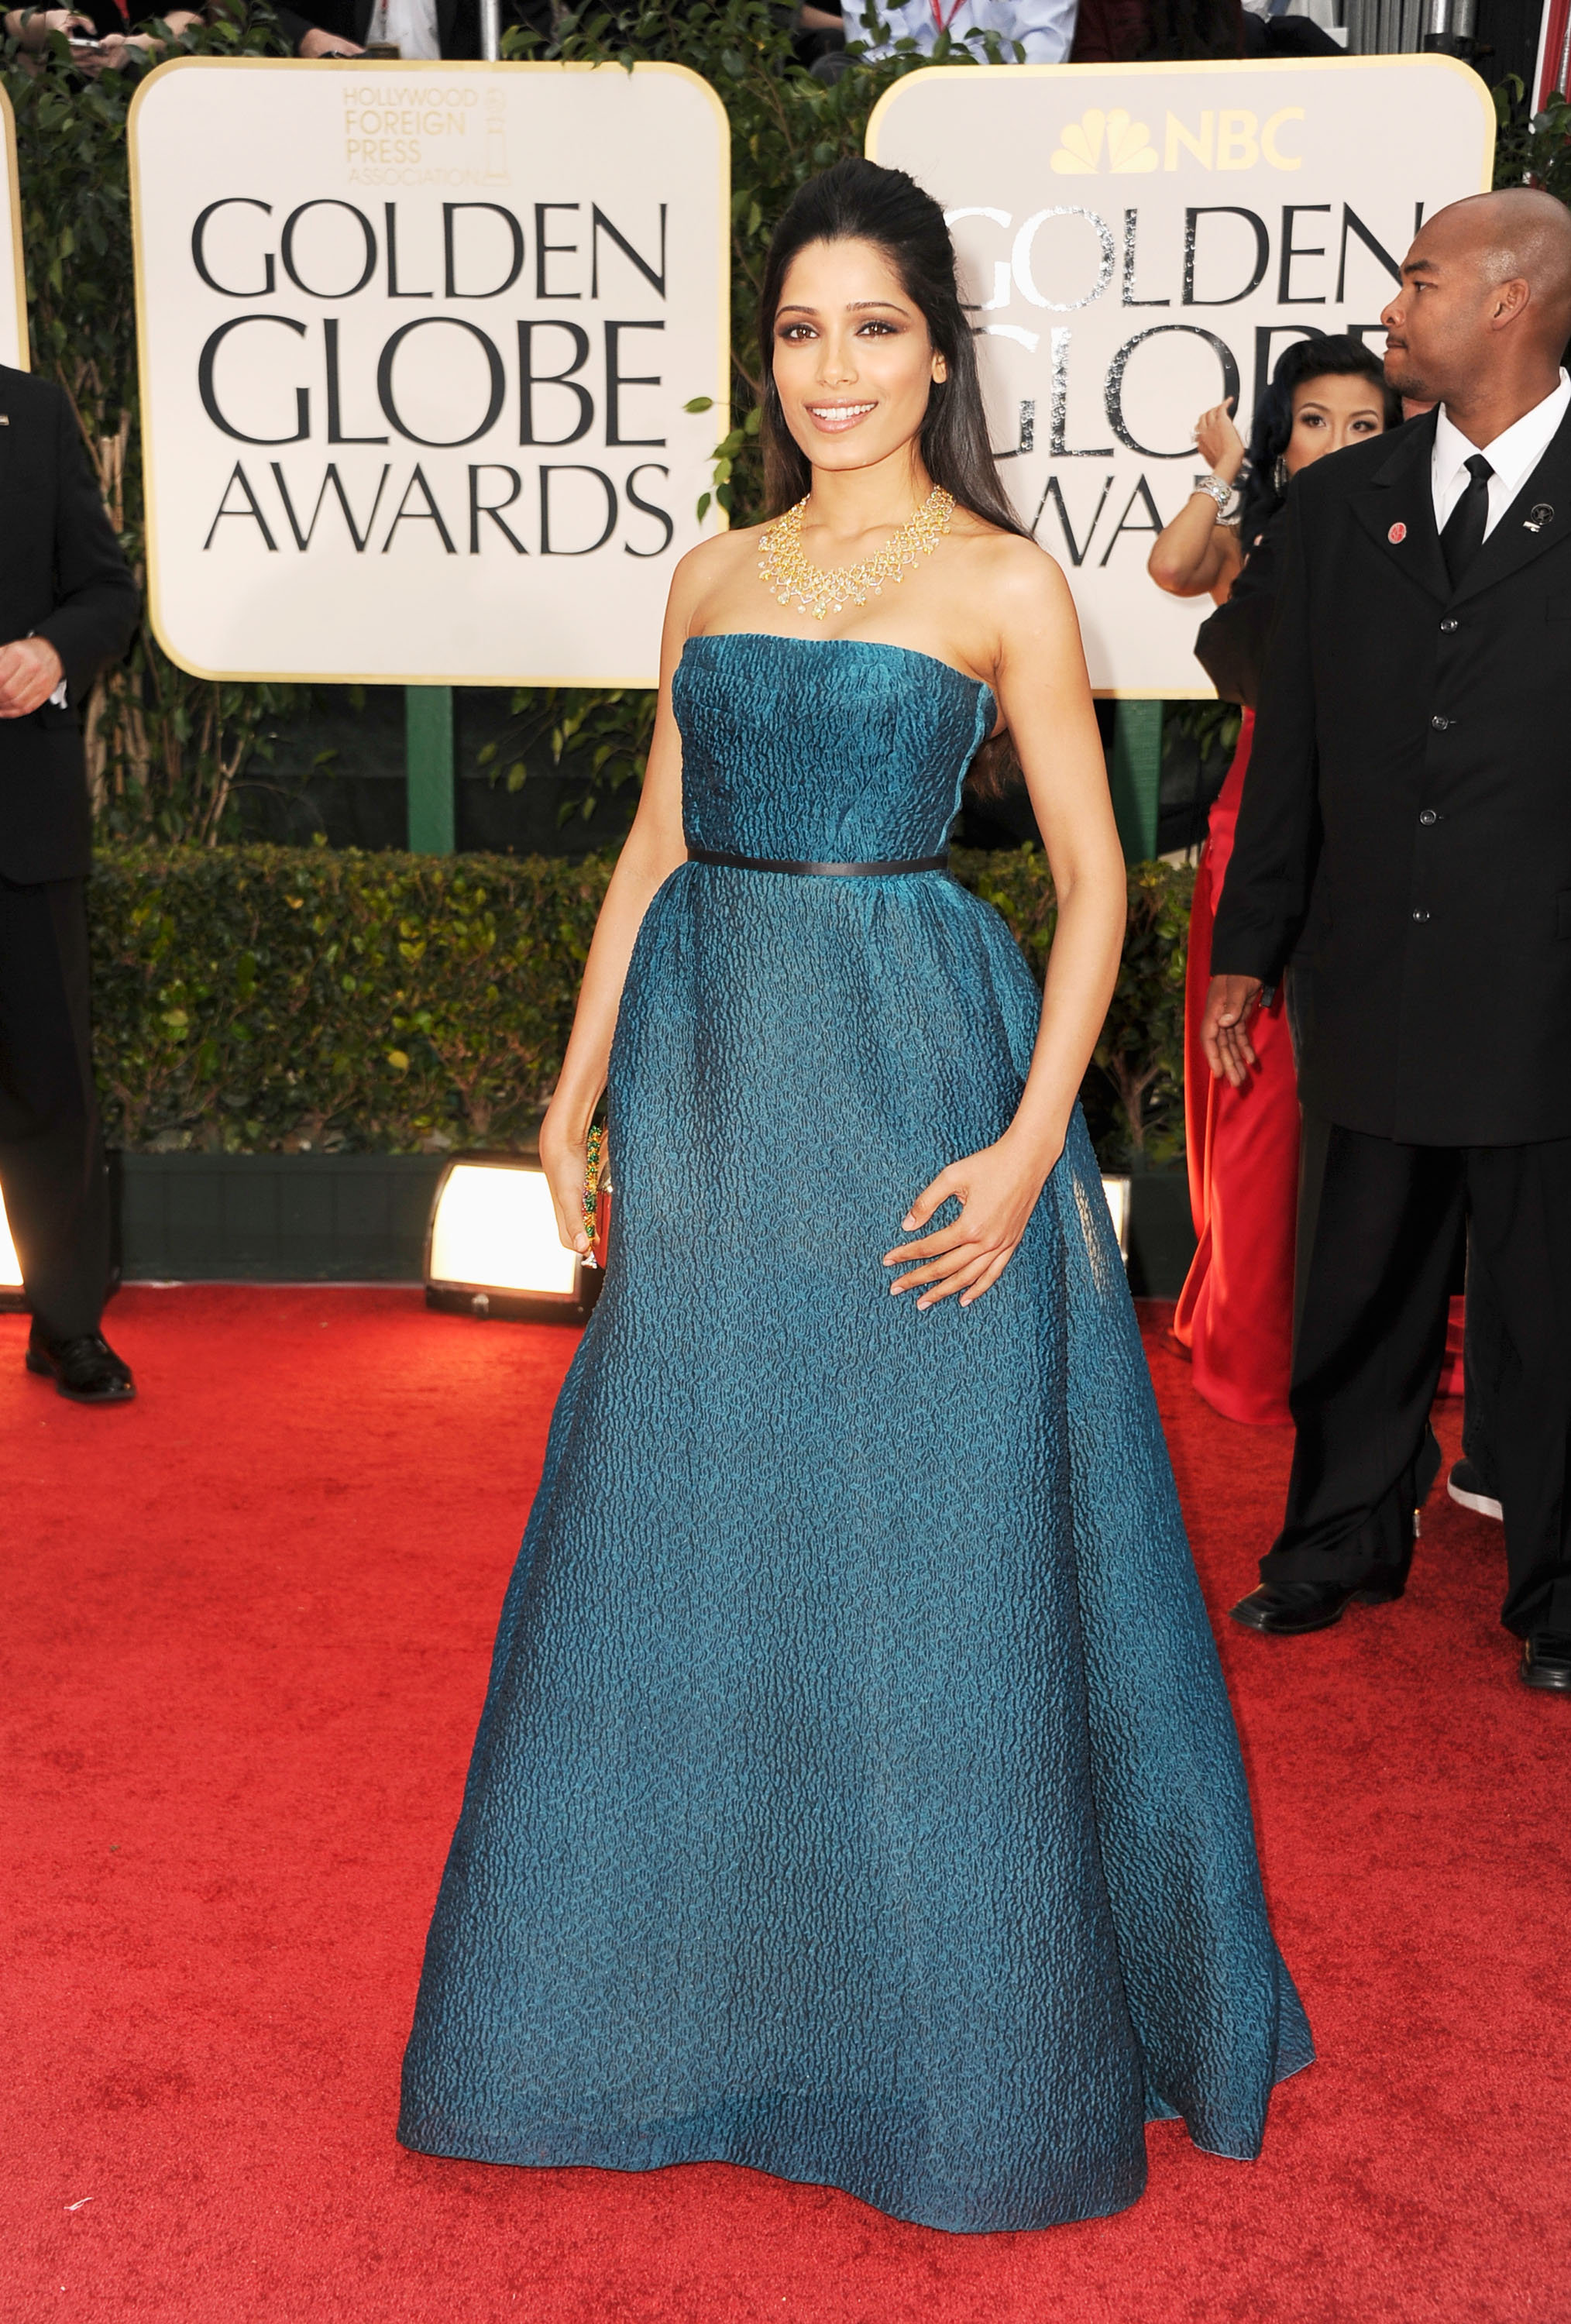 Freida Pinto at the Golden Globes.